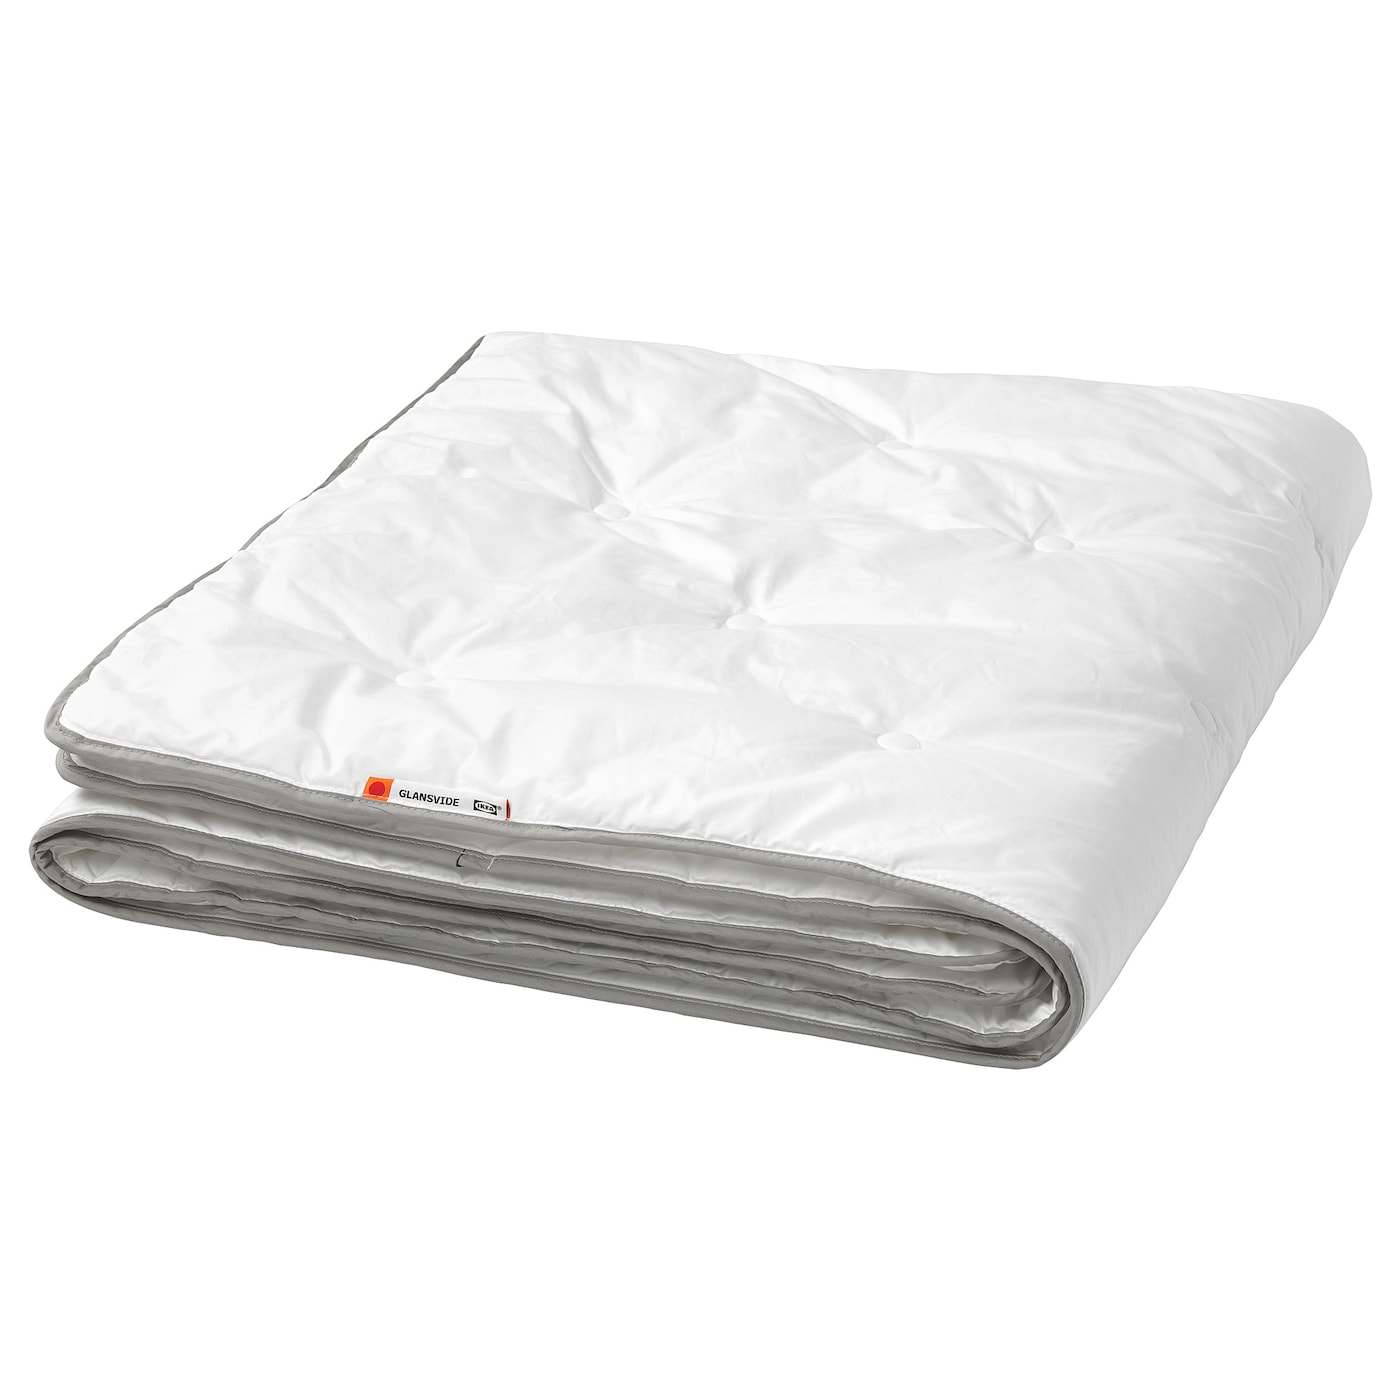 IKEA GLANSVIDE quilt, warmer A good choice if you often feel cold while sleeping.